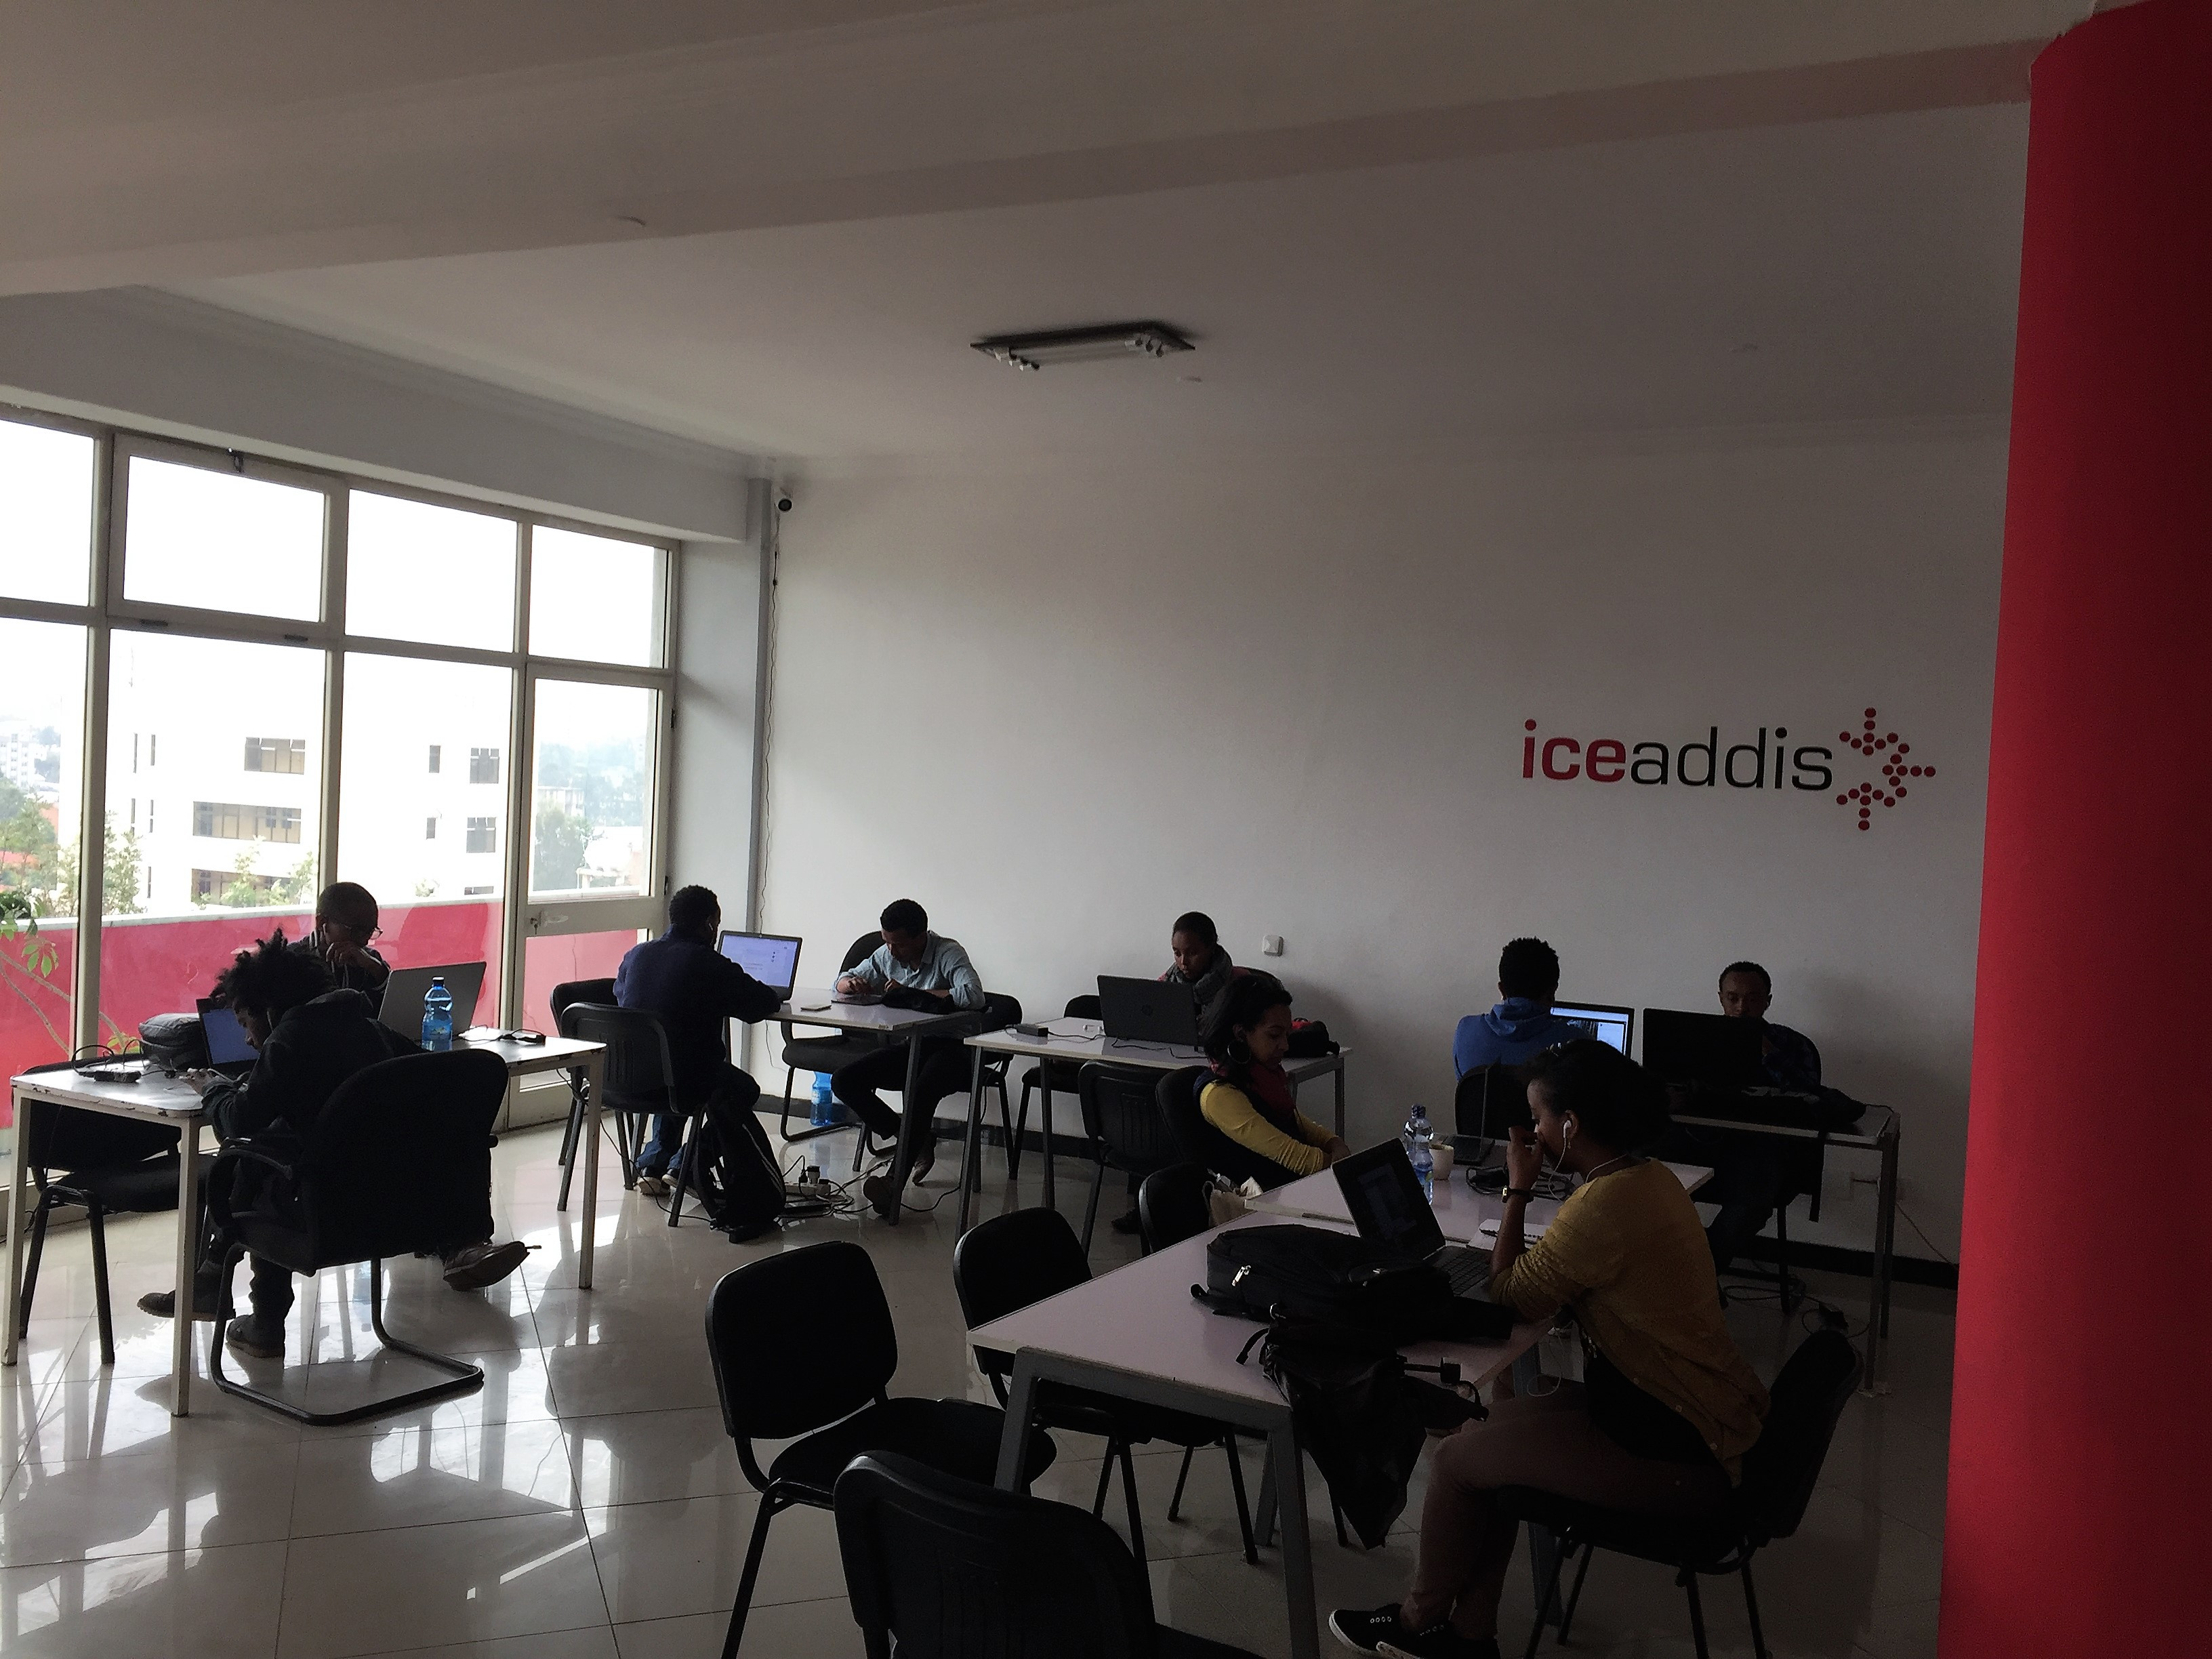 Ethiopia's bid to become an African startup hub hinges on